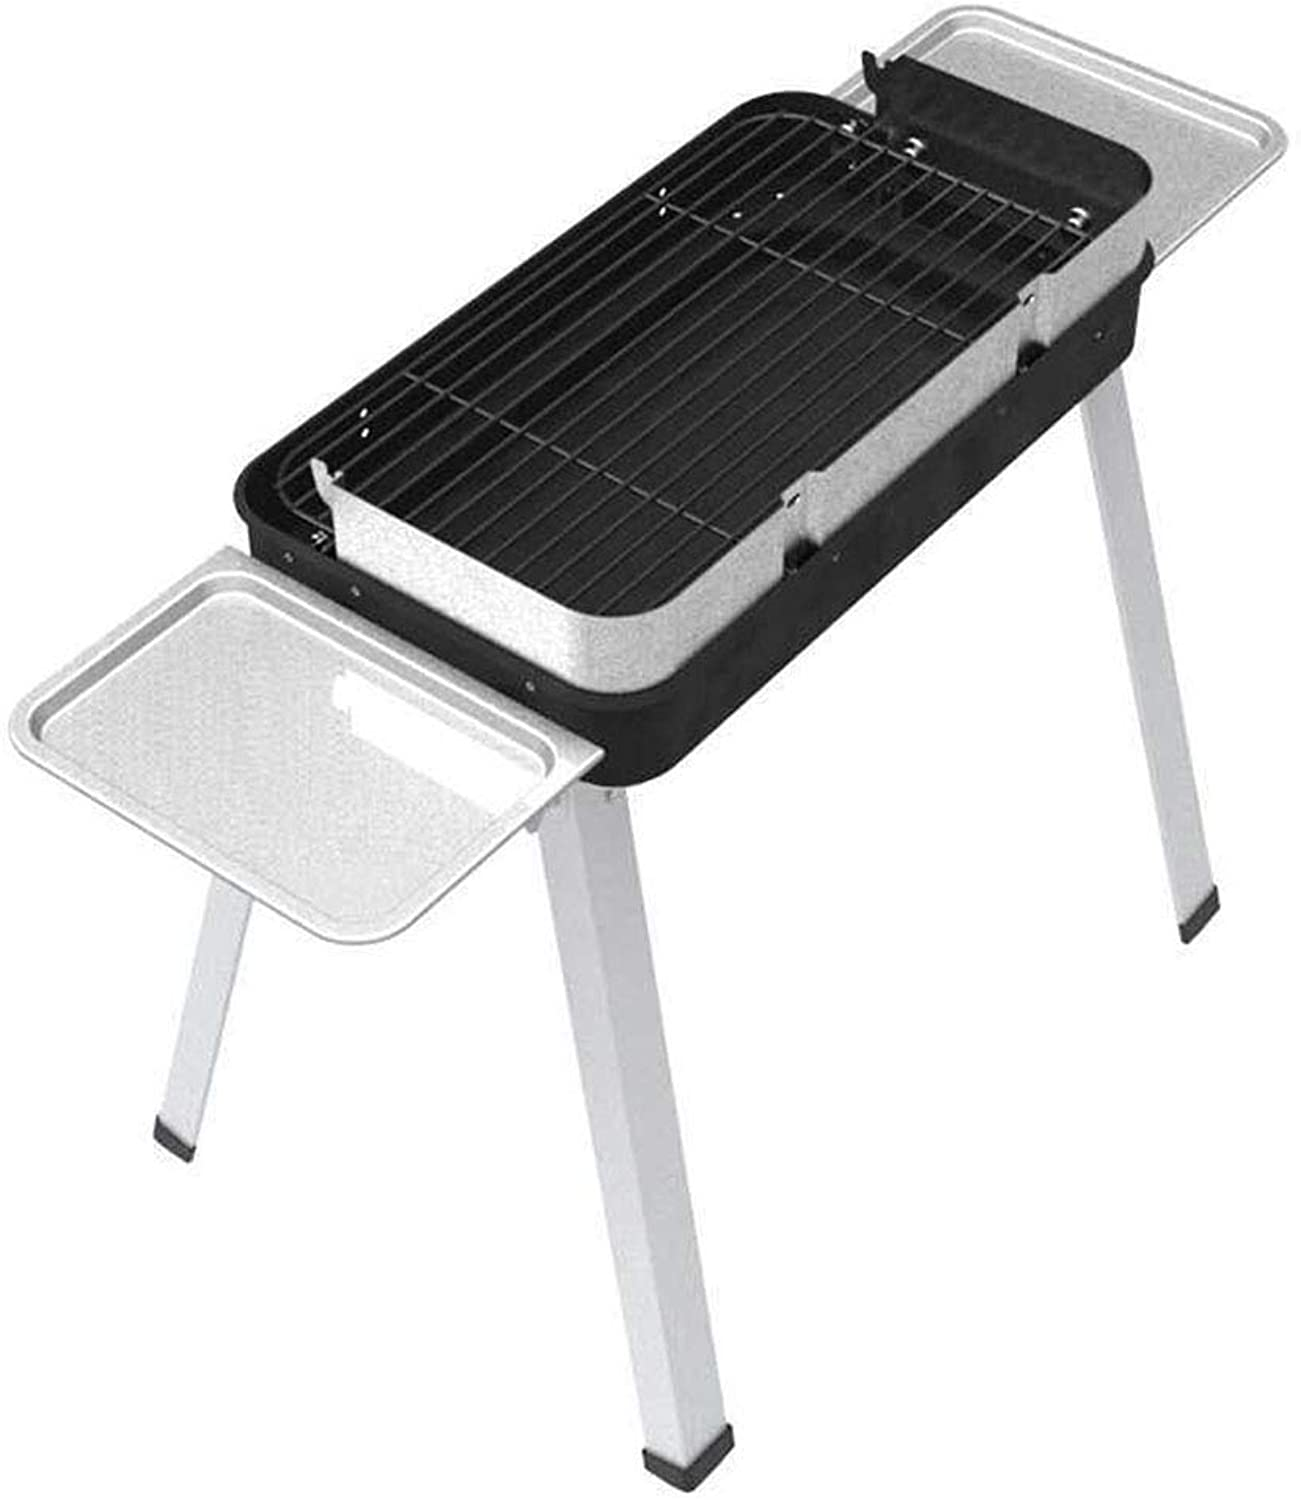 Outdoor Grill Oven Charcoal 45 Persons Stainless Steel Portable Detachable Leg Stand MultiFunction Tools Family Friends Field Camping Picnic Garden Party Fishing Garden